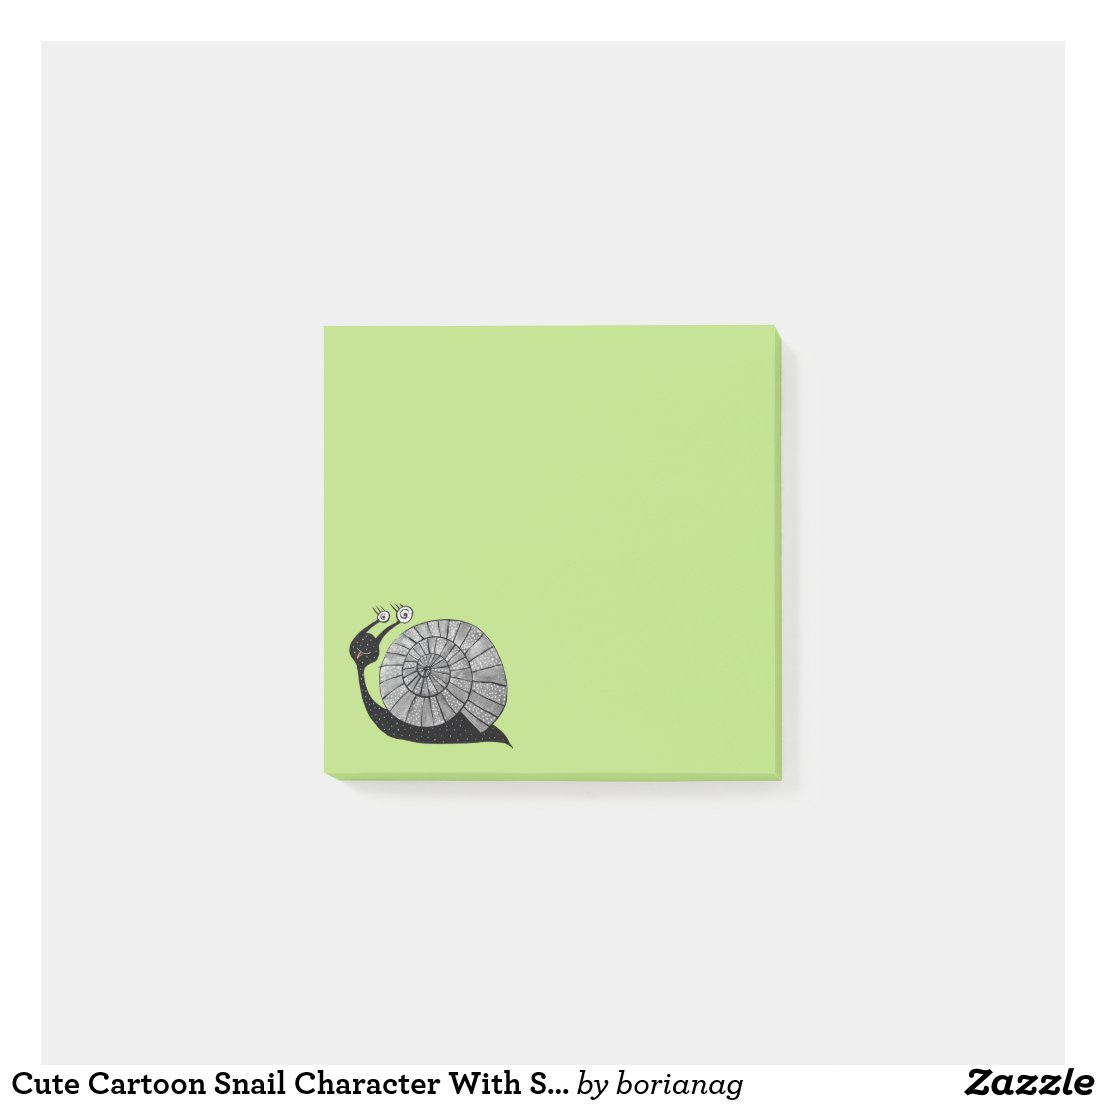 Cute Cartoon Snail Character With Spiral Eyes Post-it Notes